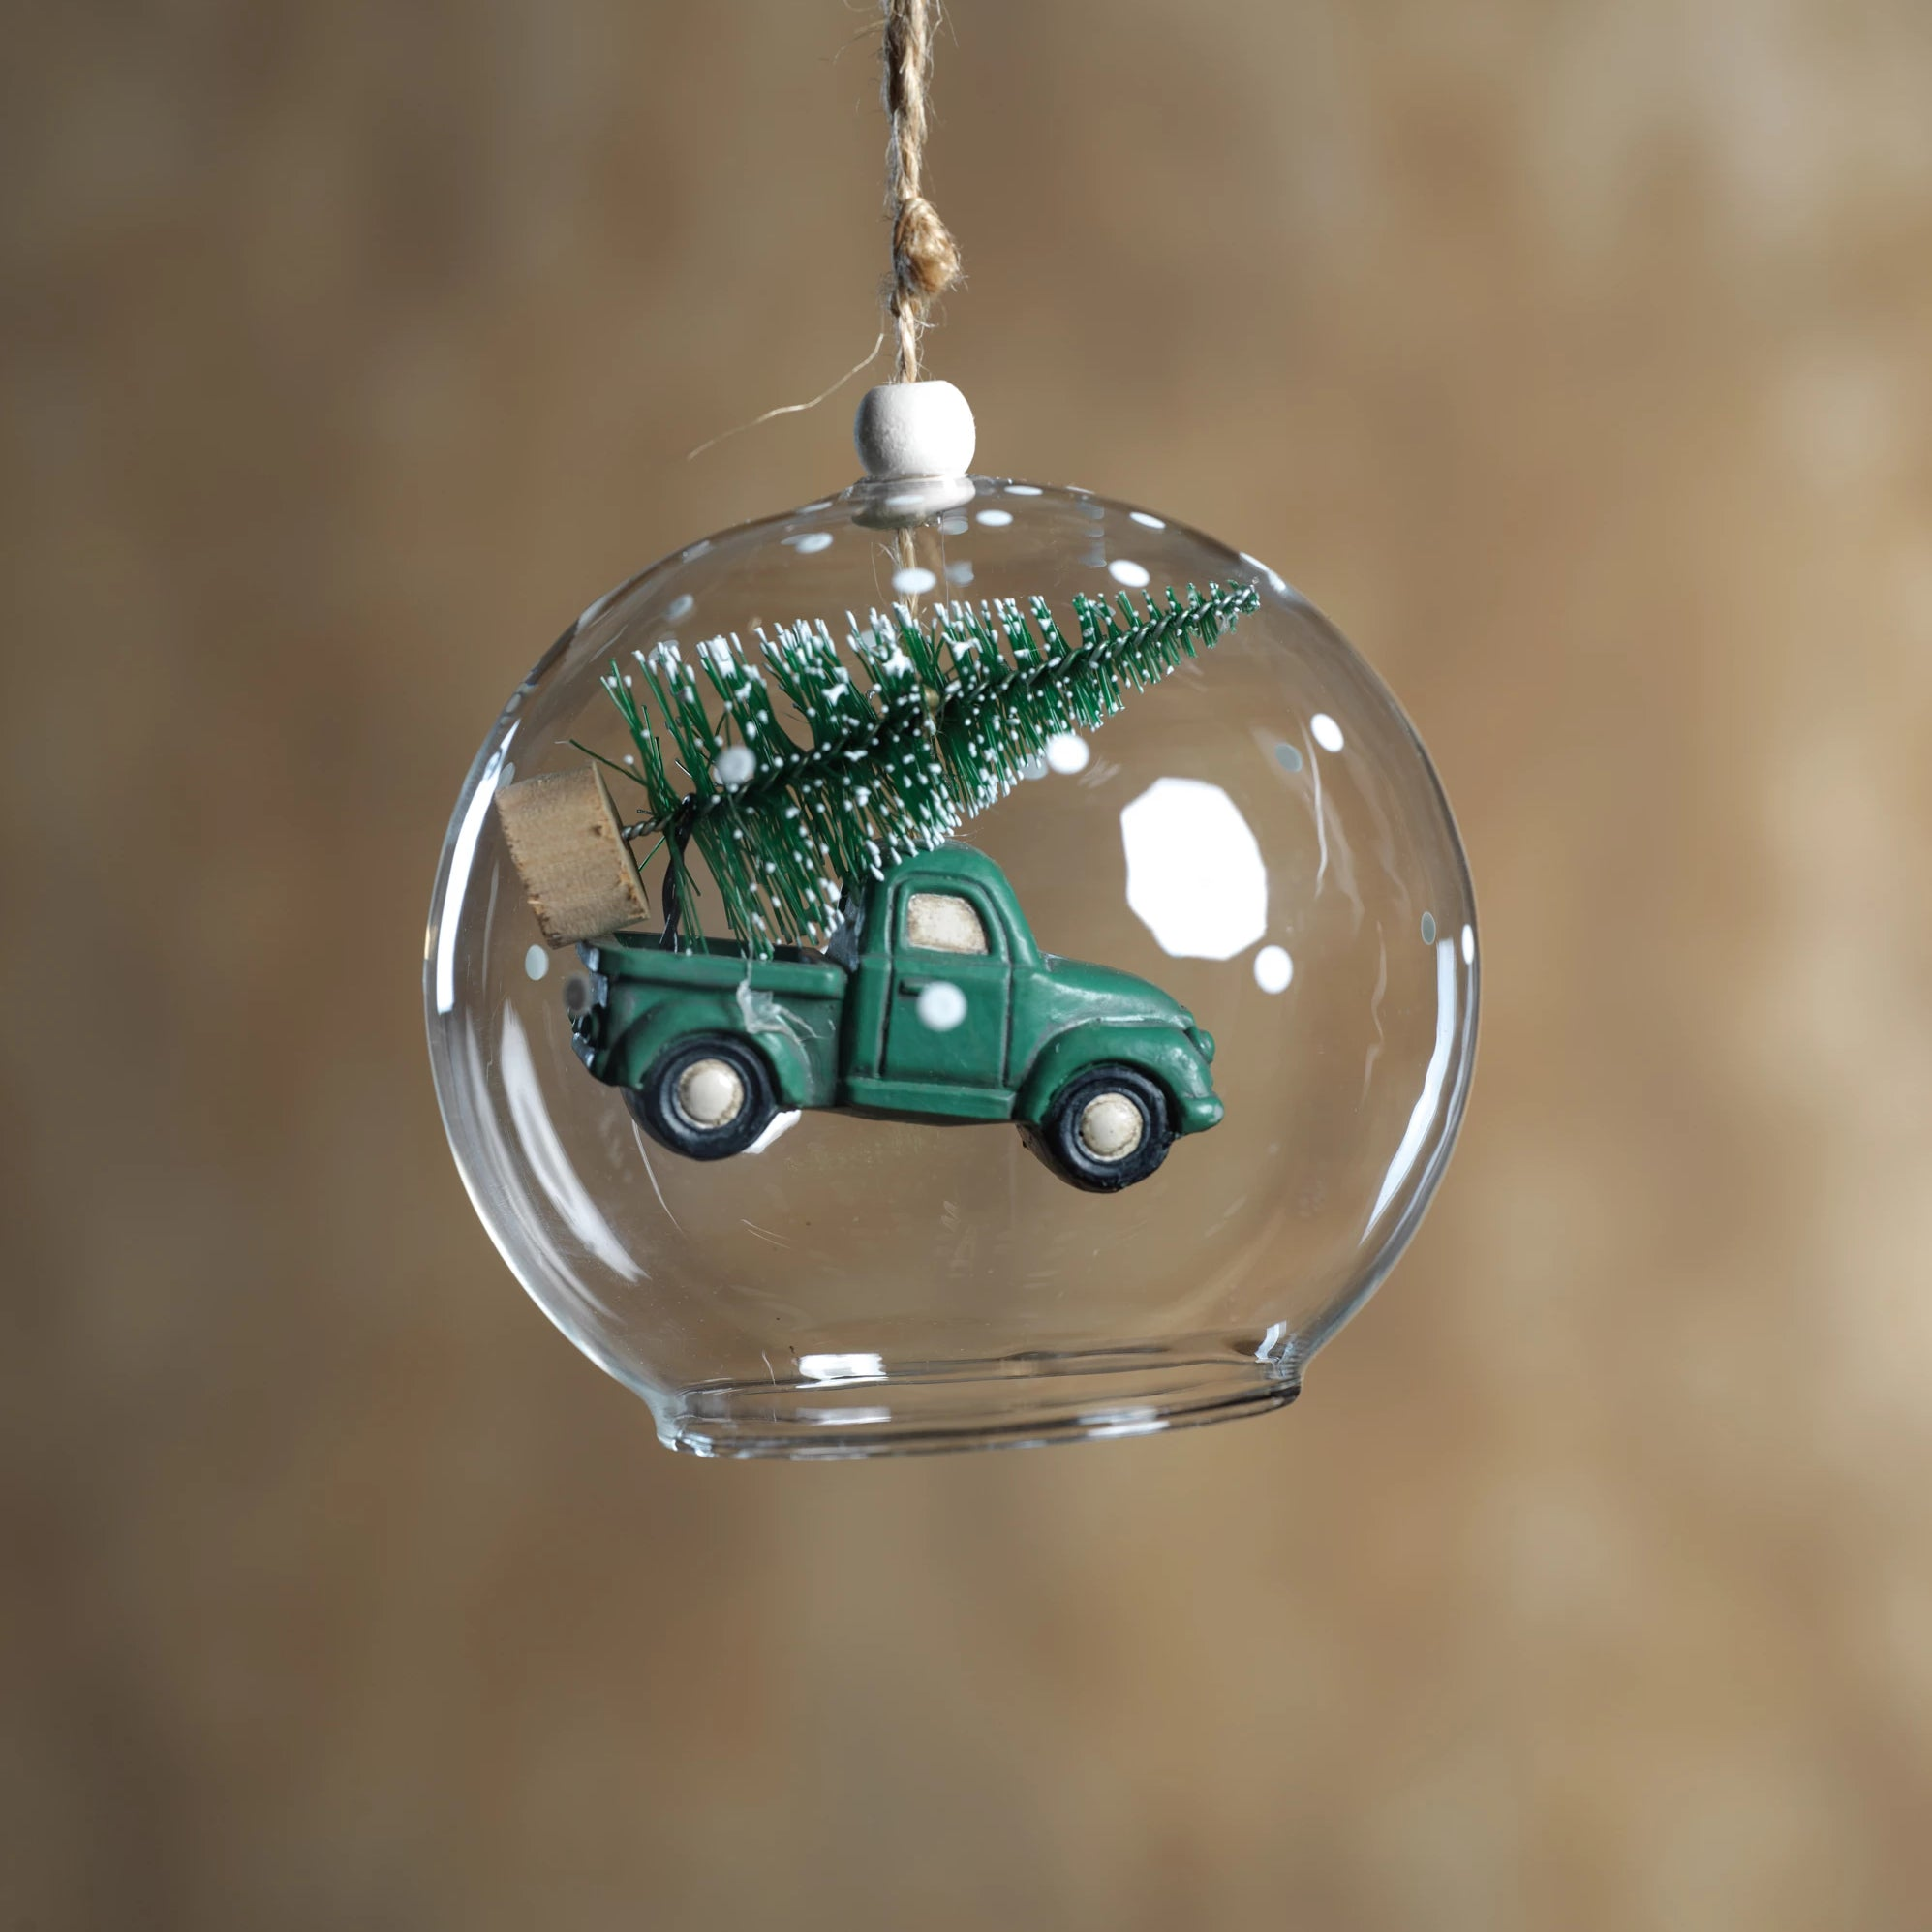 Tree on Car Ornament - Green - Set of 6 - CARLYLE AVENUE